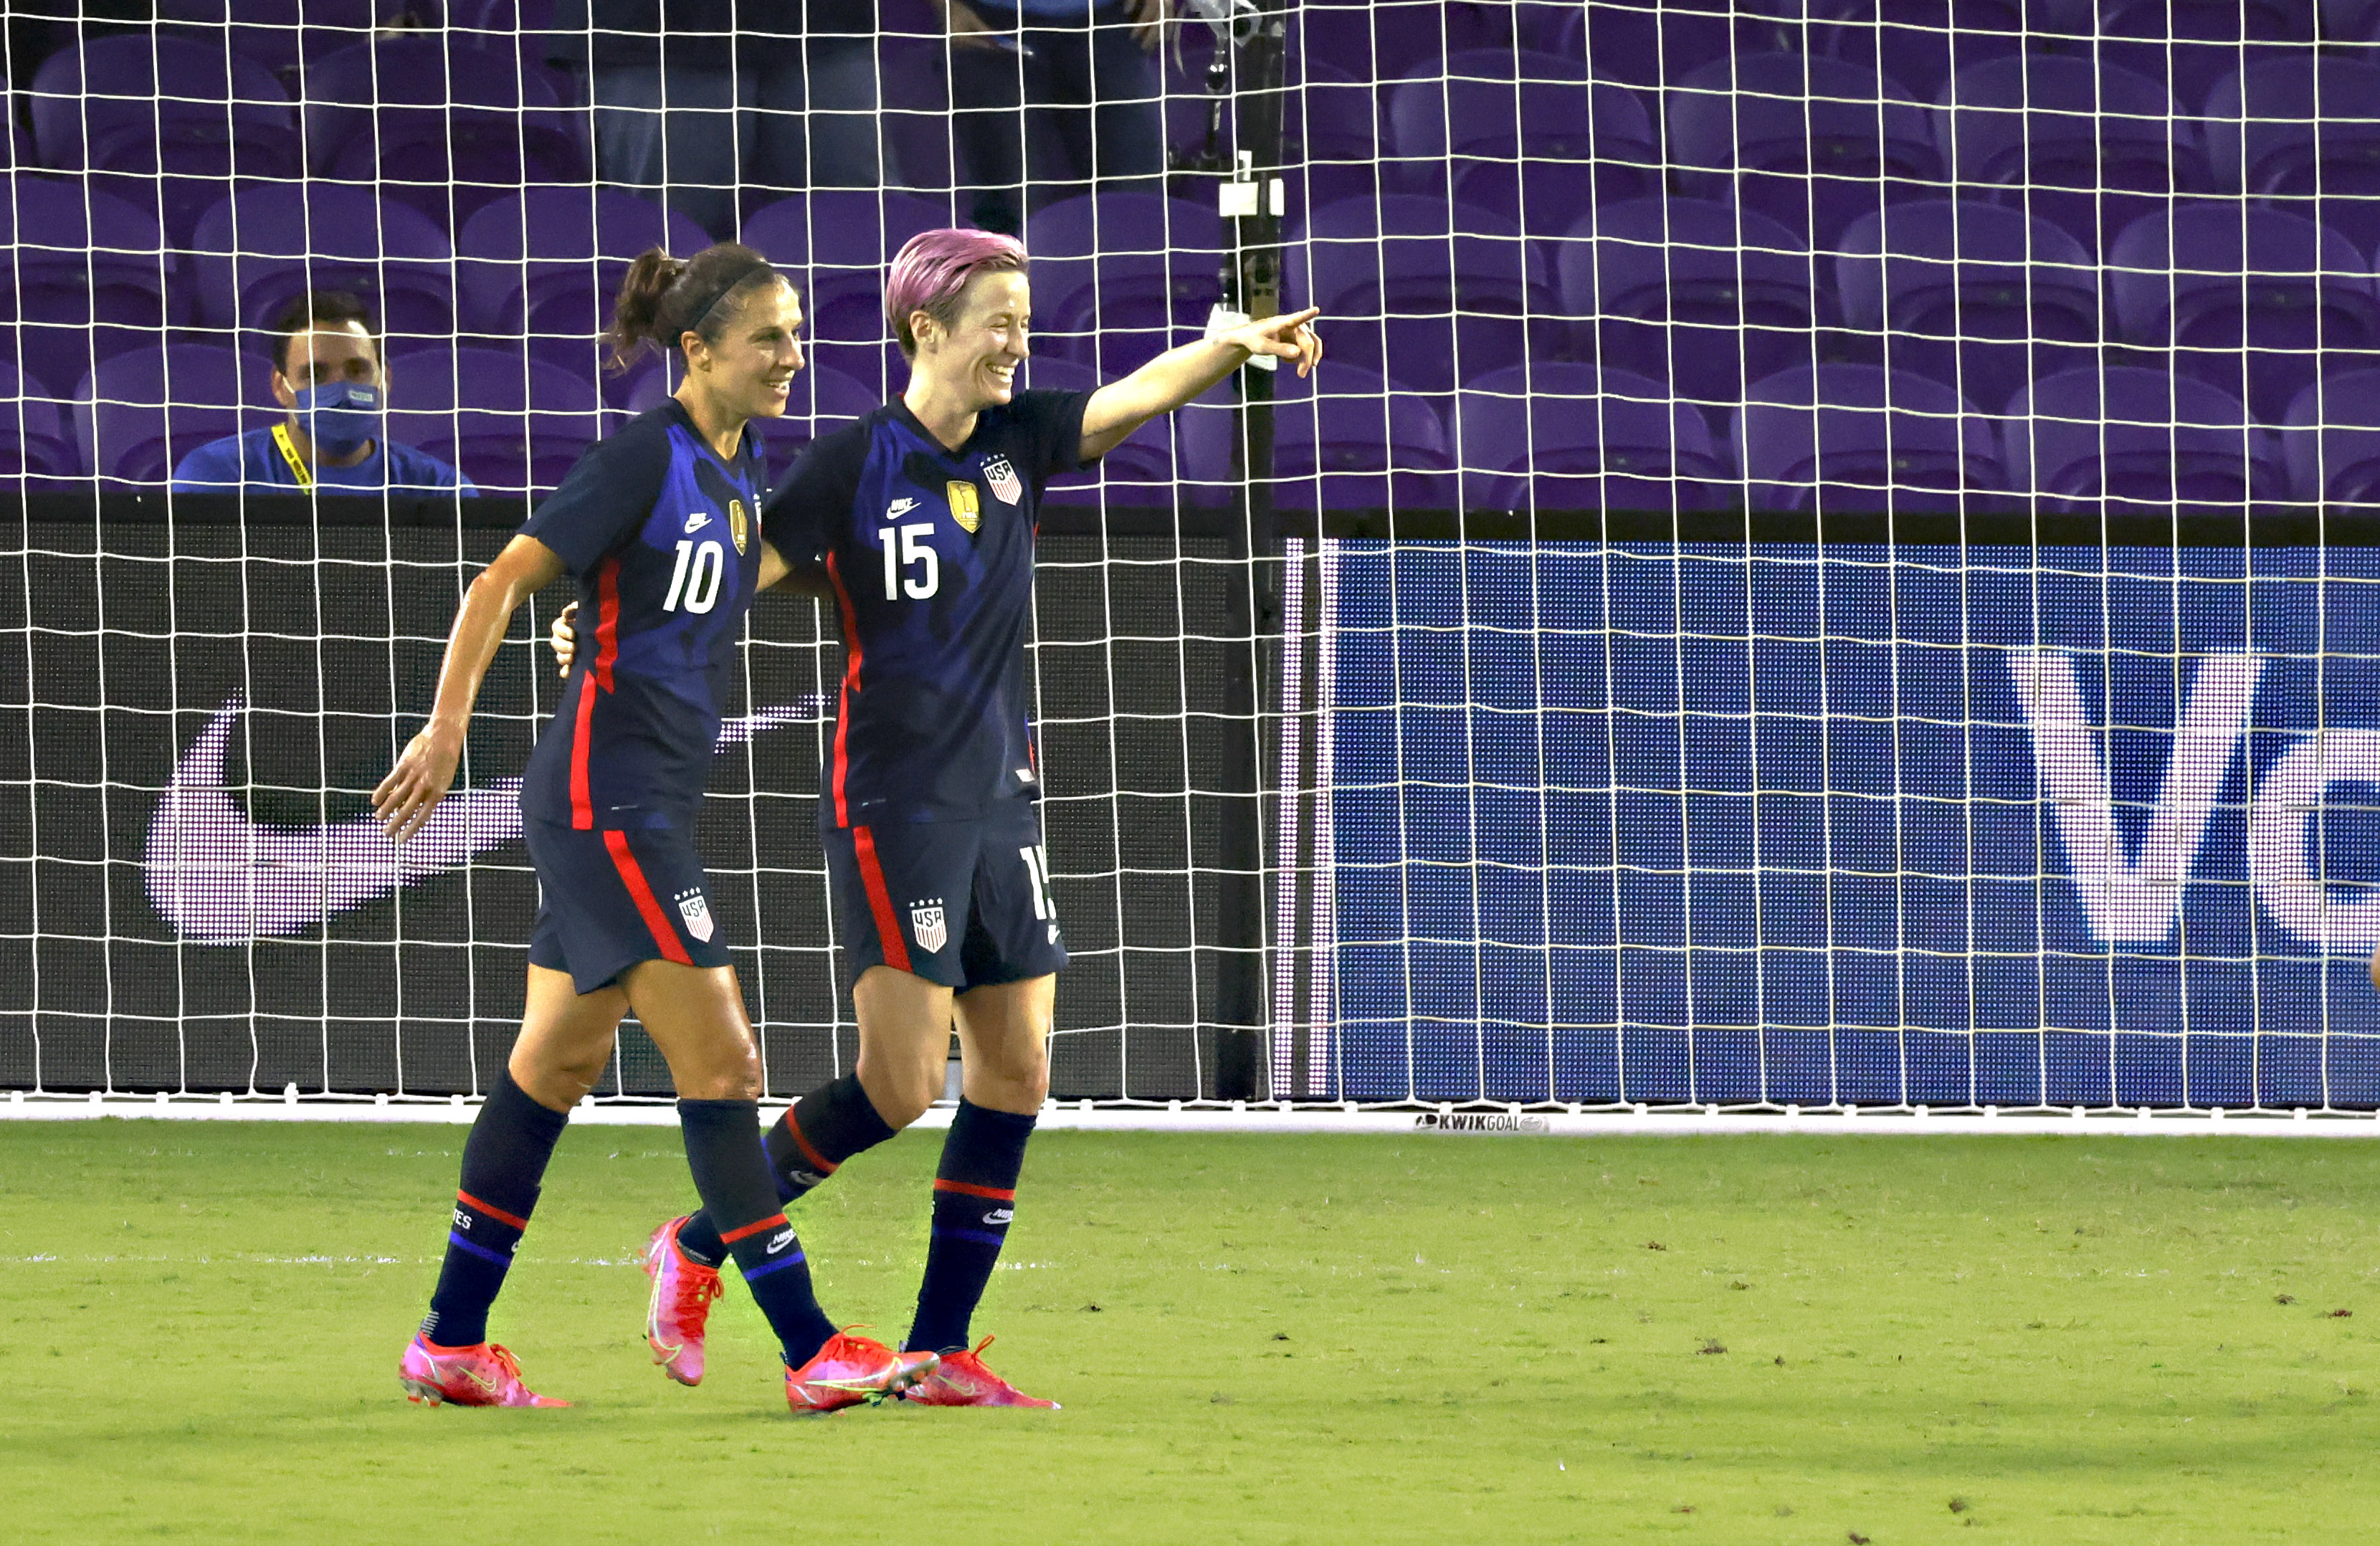 Feb 24, 2021; Orlando, Florida, USA; United States midfielder Carli Lloyd (10) celebrates a goal by forward Megan Rapinoe (15) during the first half of a She Believes Cup soccer match against Argentina at Exploria Stadium. Mandatory Credit: Reinhold Matay-USA TODAY Sports